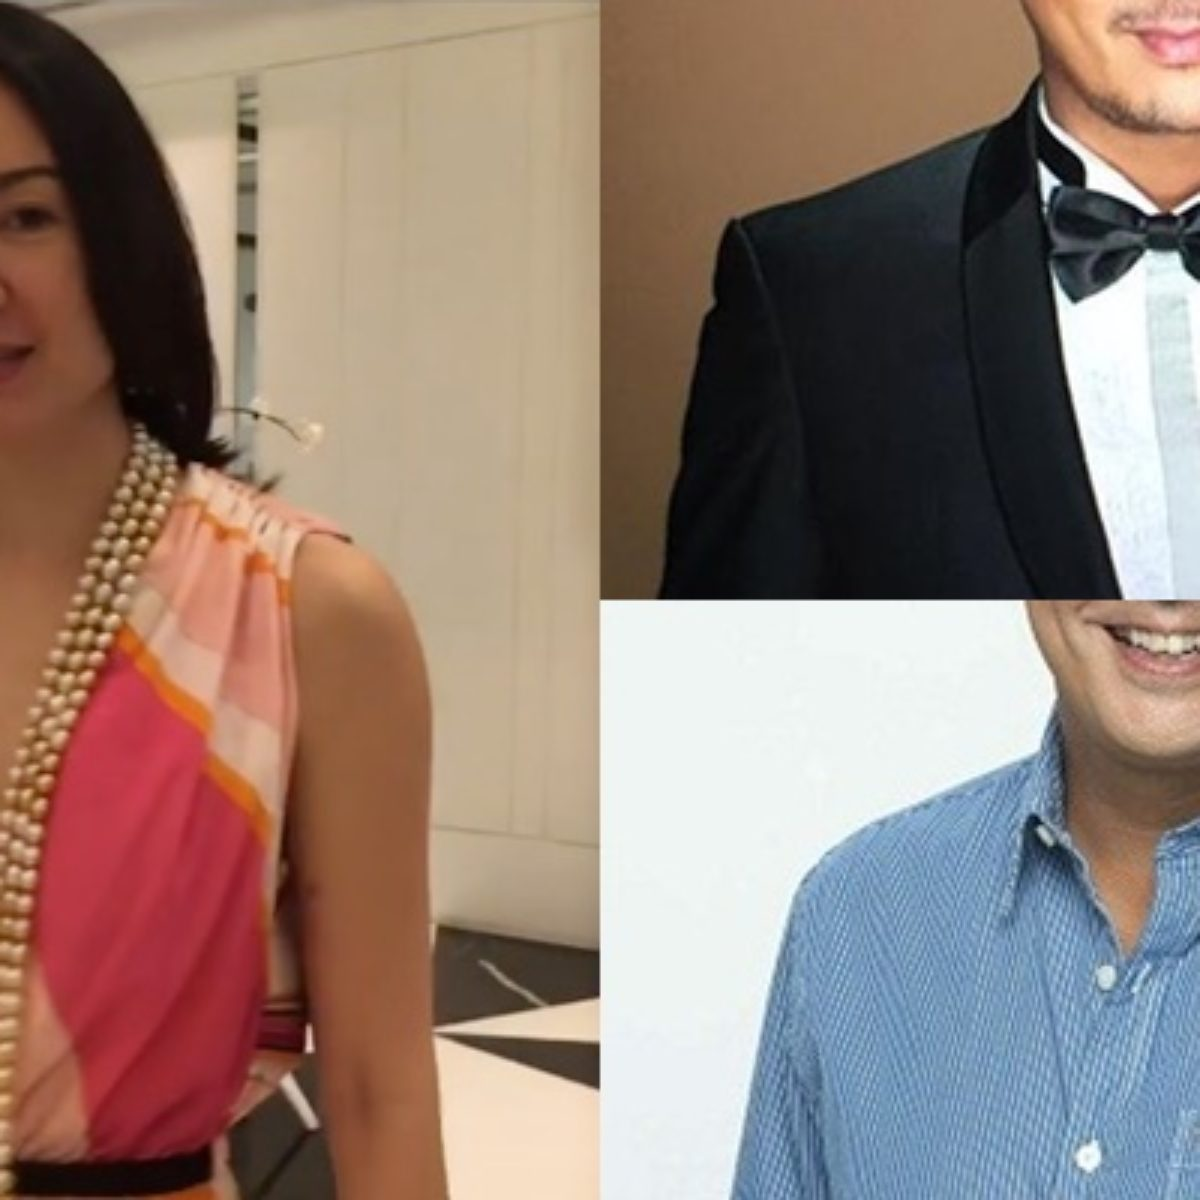 Alma Concepcion Hot gretchen barretto history: who are the men linked to her before?